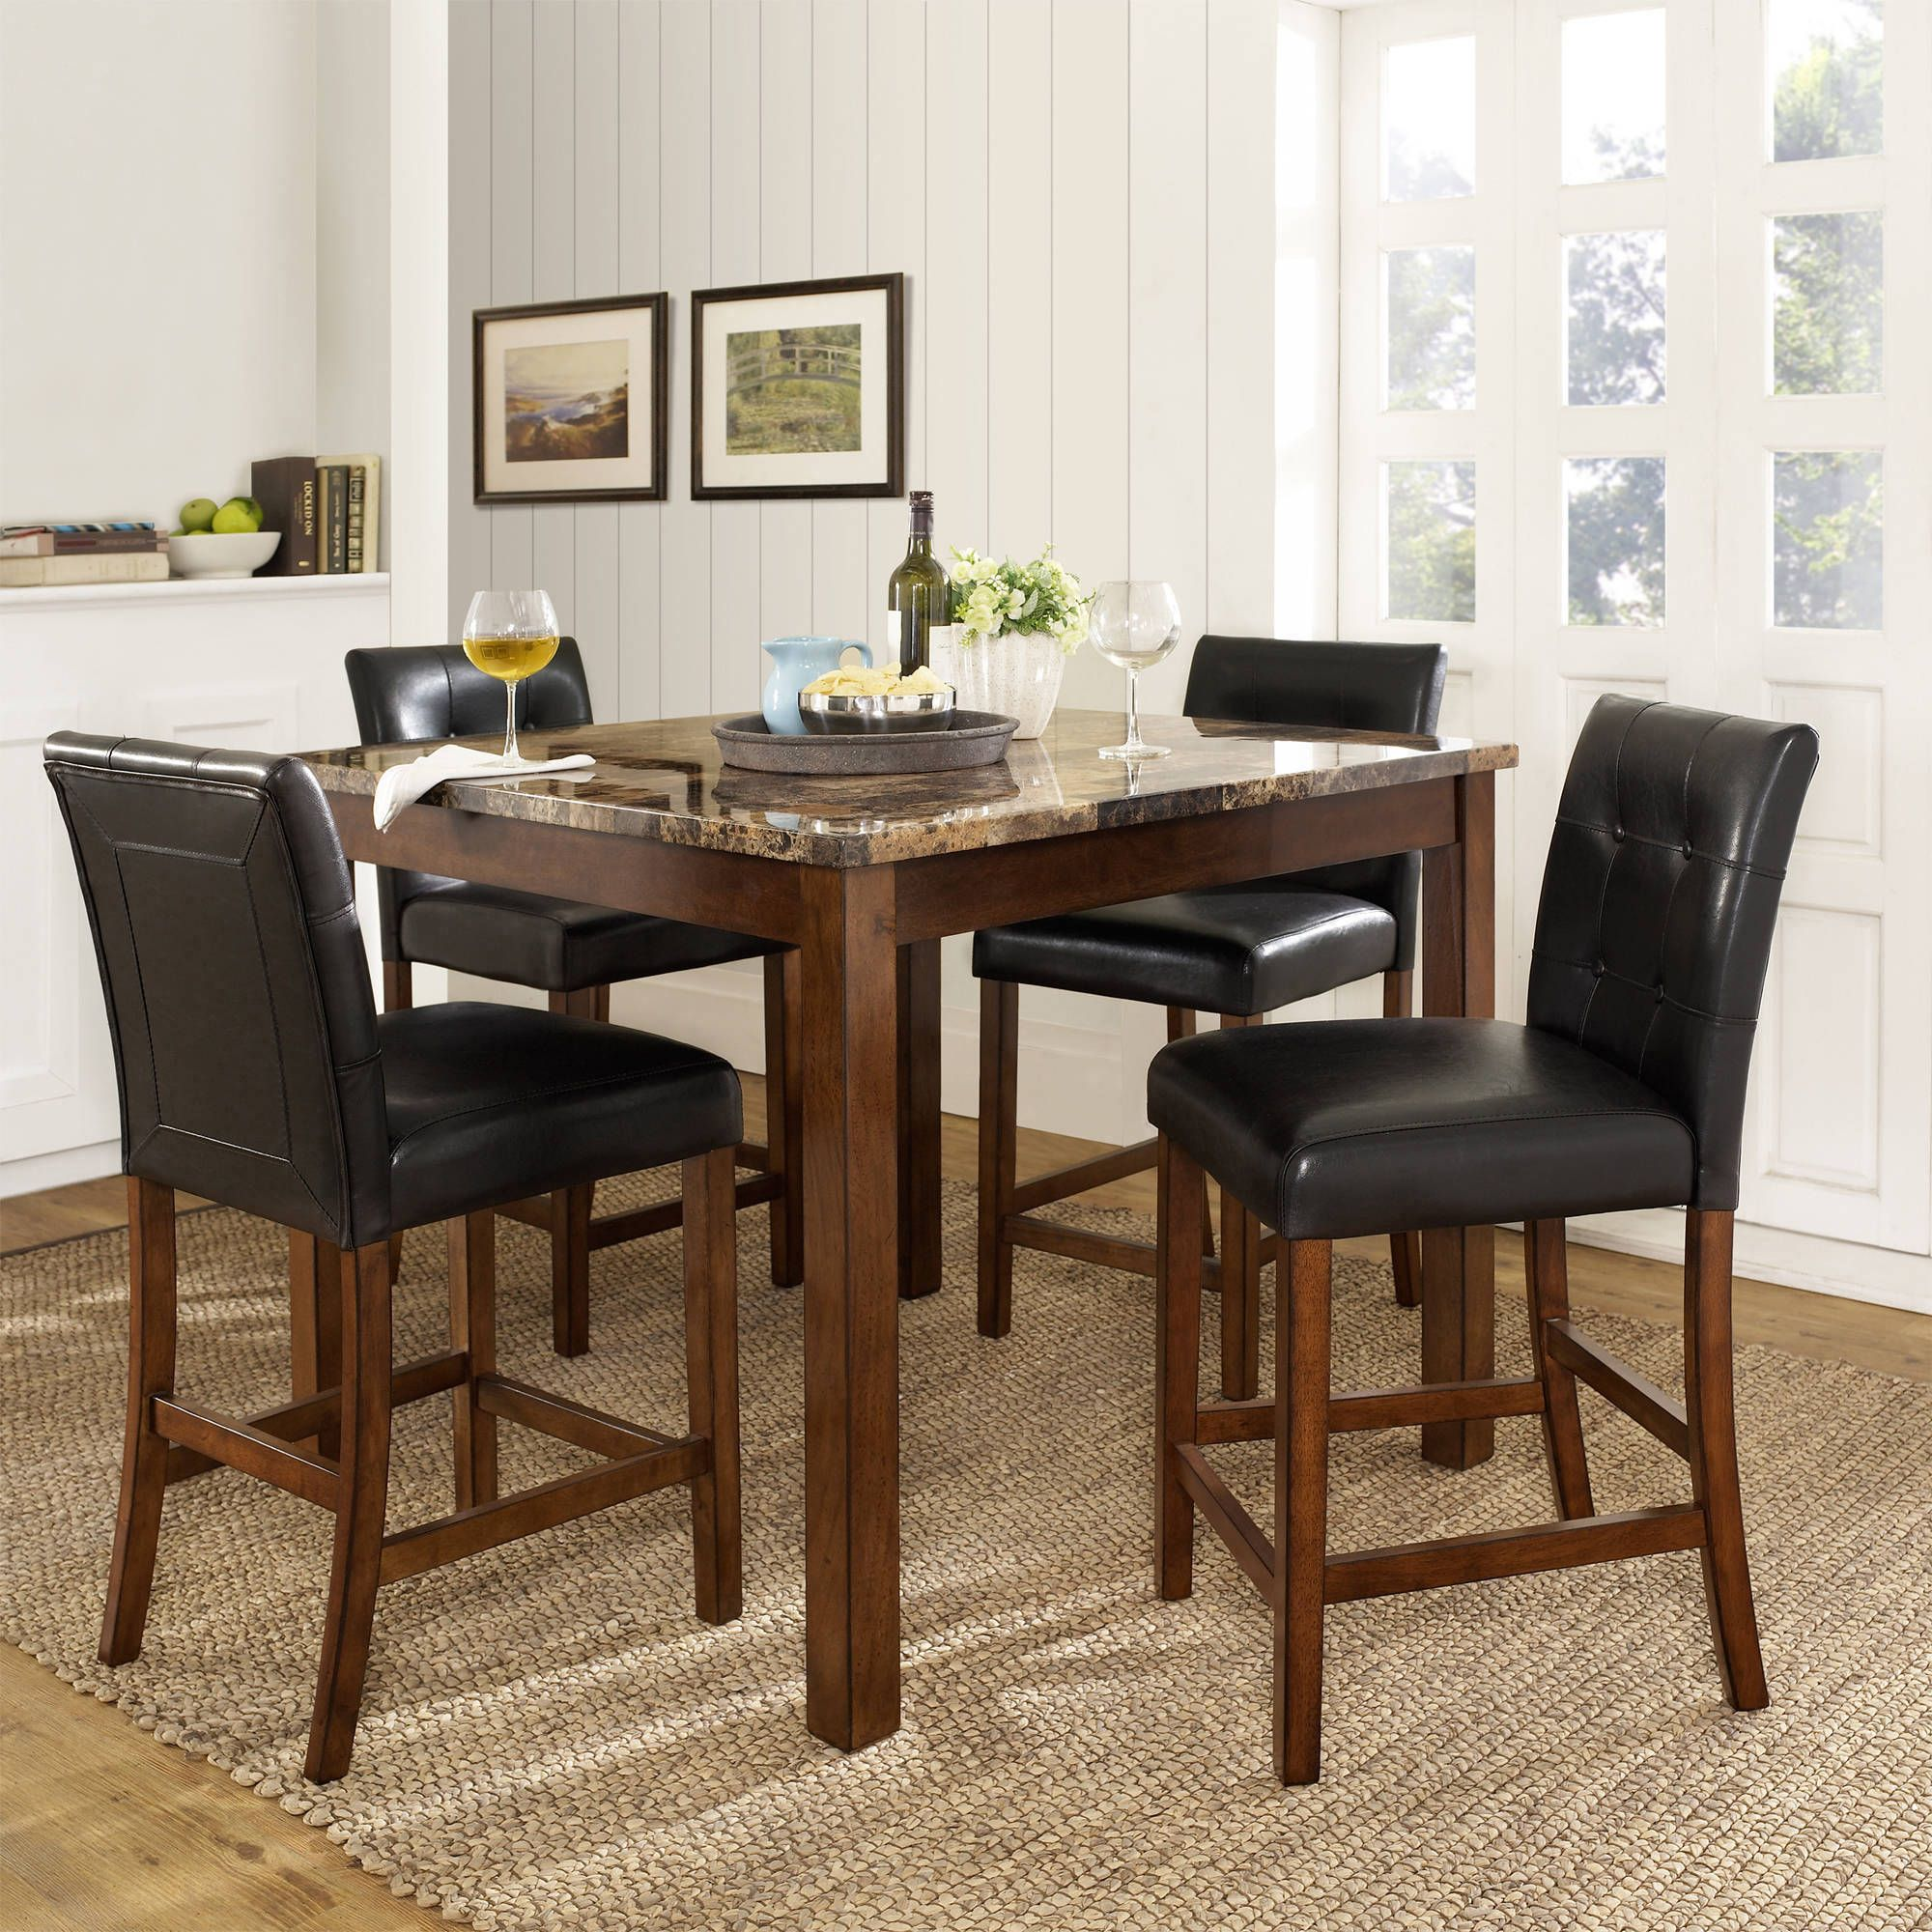 Home In 2020 Dining Room Sets Counter Height Dining Sets